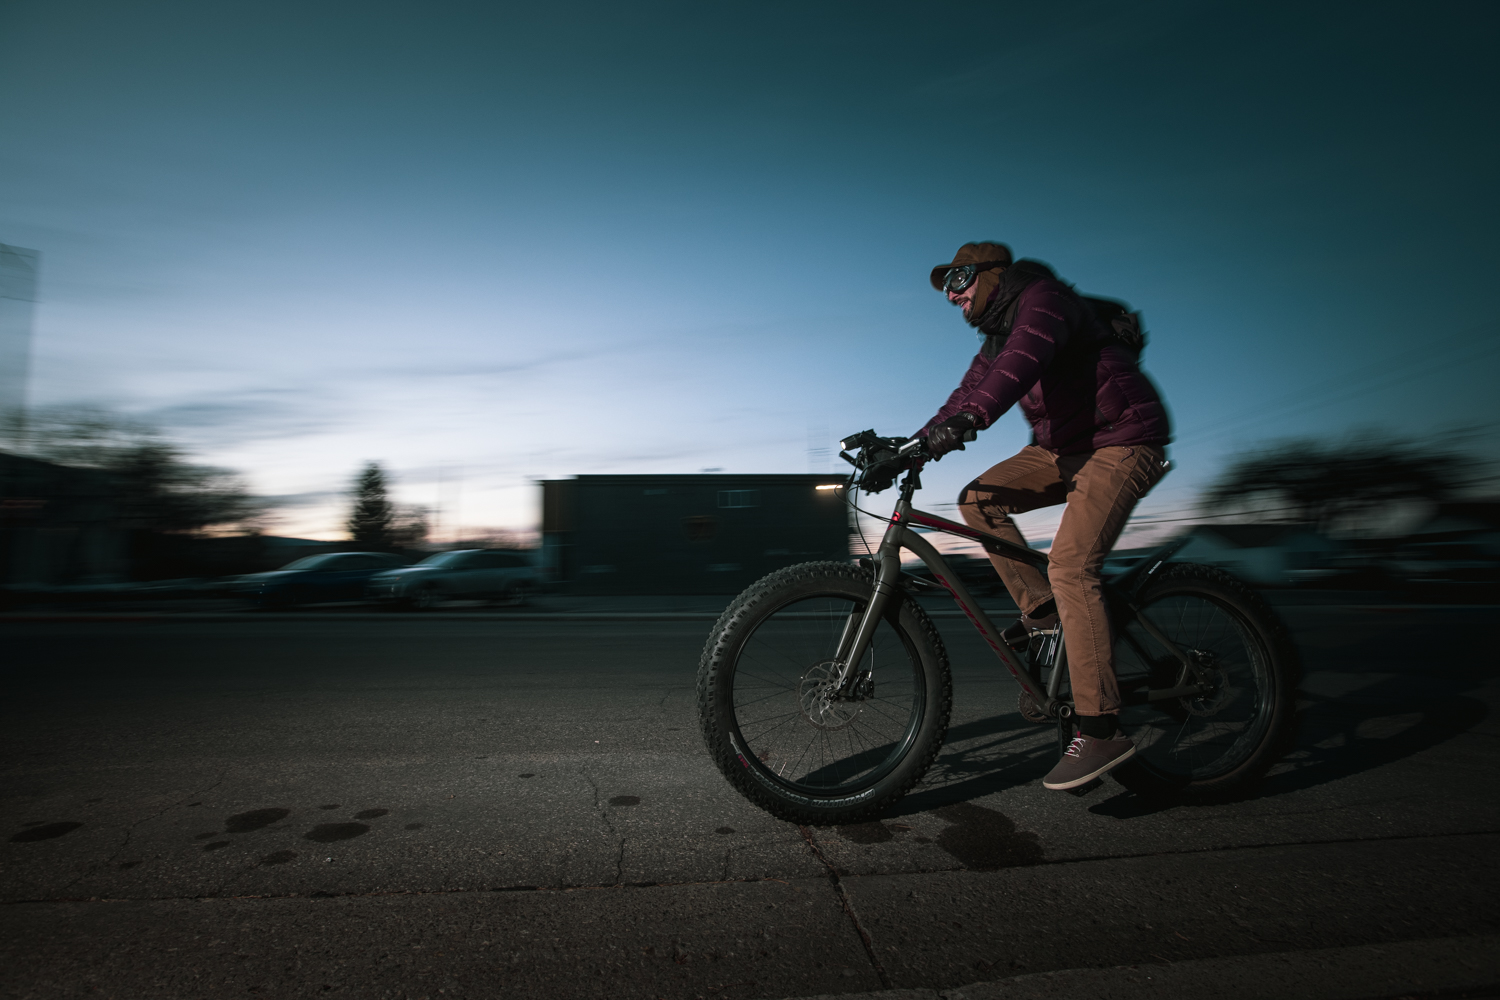 Craig Okraska photographs a man at dusk zooming by on his bike for the LOR Foundation